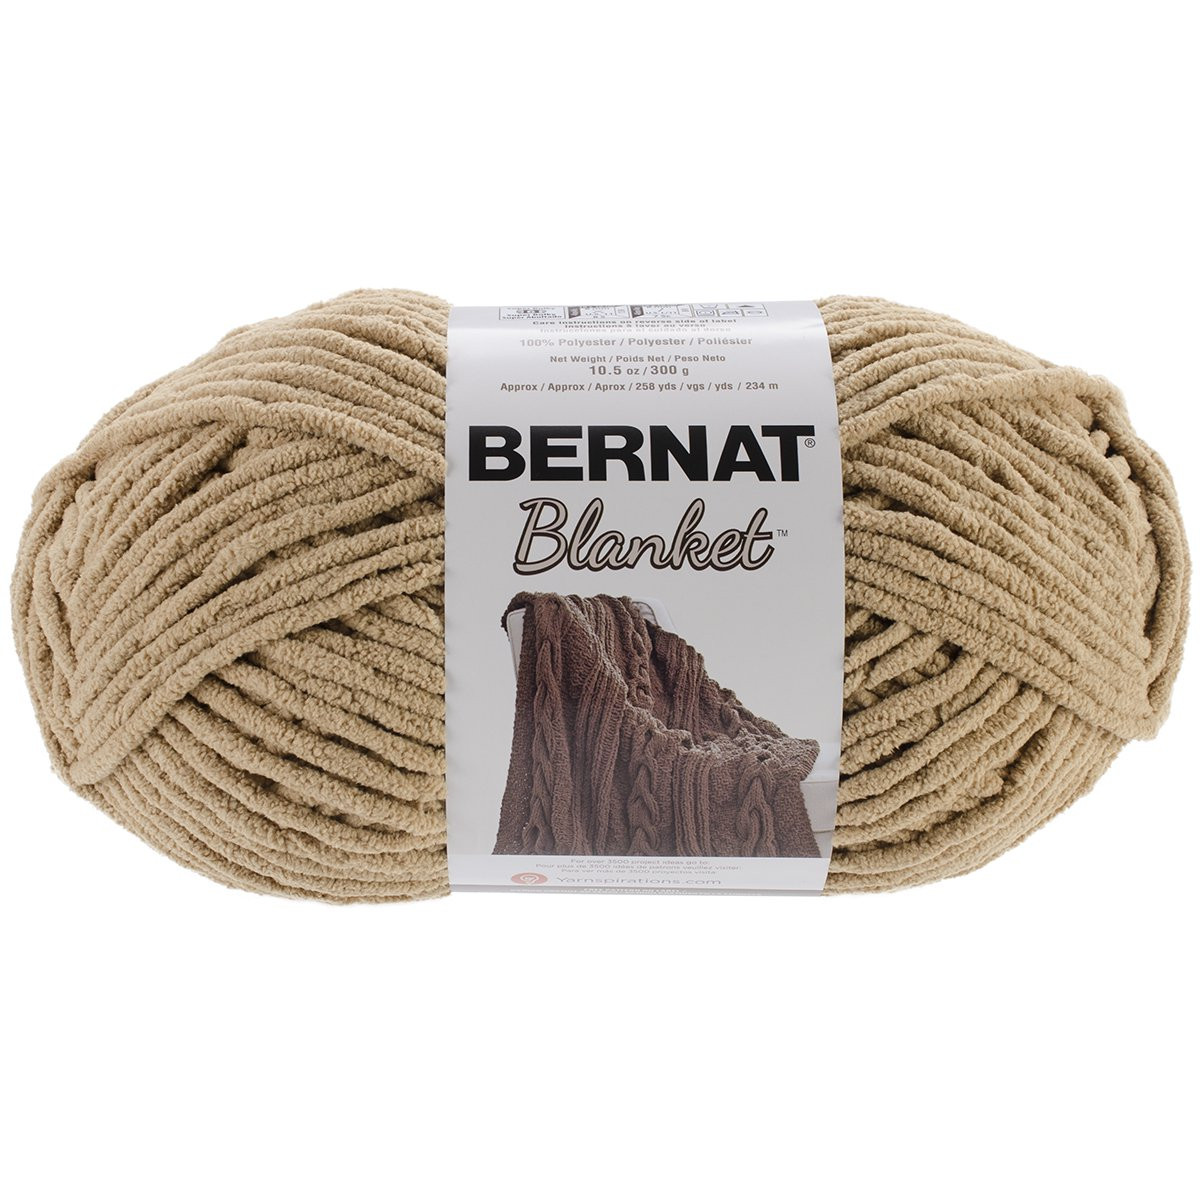 Bernat Blanket Big Ball Yarn Awesome Spinrite Bernat Blanket Big Ball Yarn Of Innovative 41 Ideas Bernat Blanket Big Ball Yarn